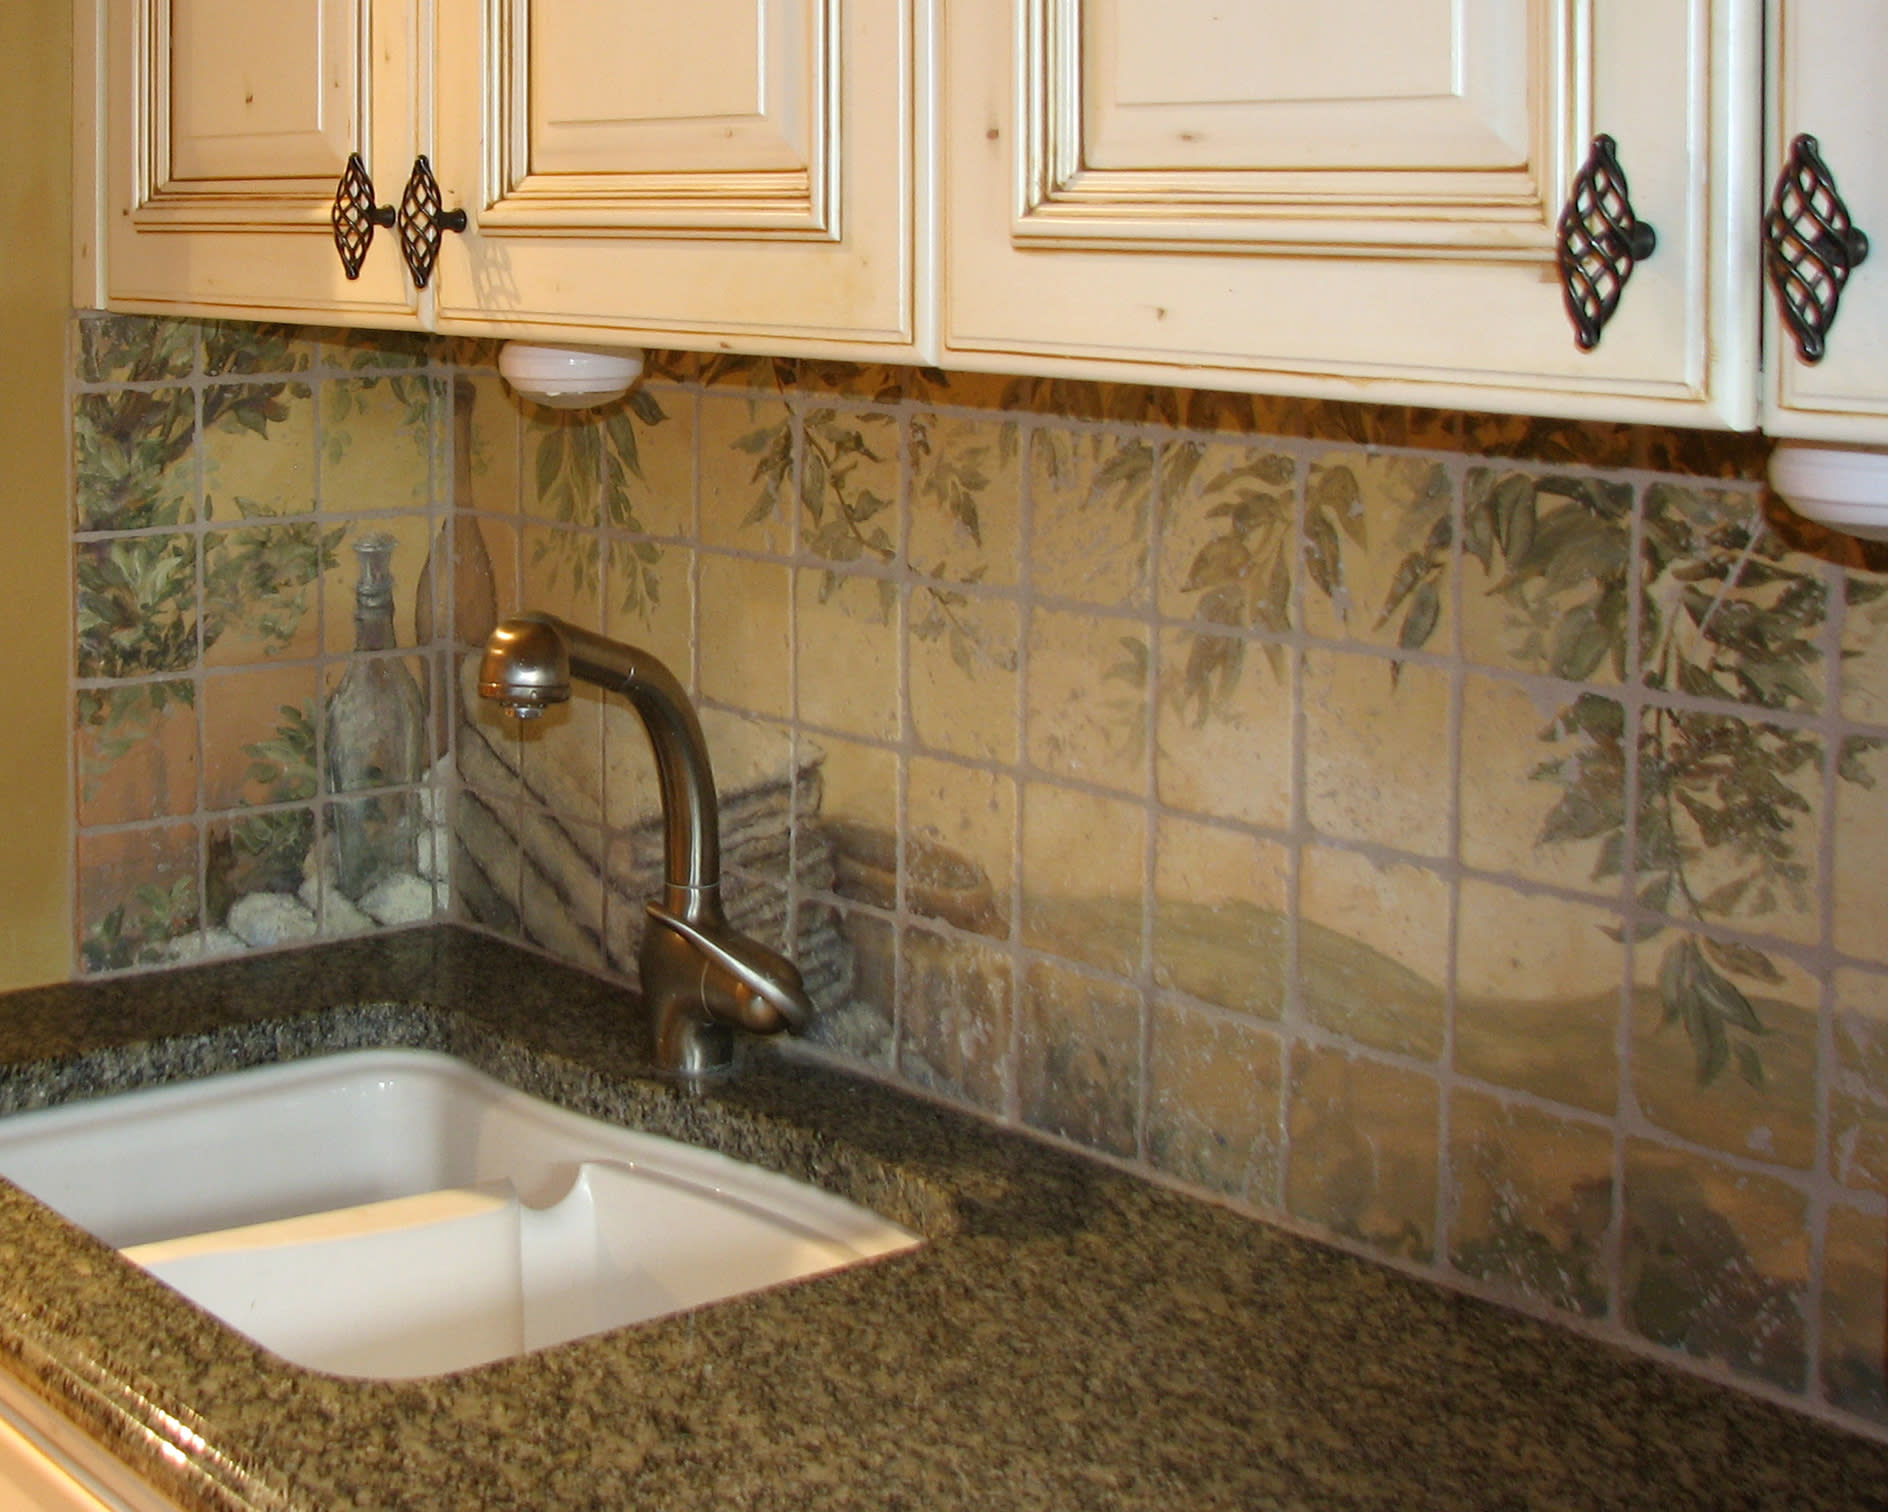 "<div class='title'>           Laundry Backsplash on tumbled marble         </div>                 <div class='description'>           ""Tuscan"" feel with olive trees... and folded towels in this laundry backsplash painted on tumbled marble tiles         </div>"